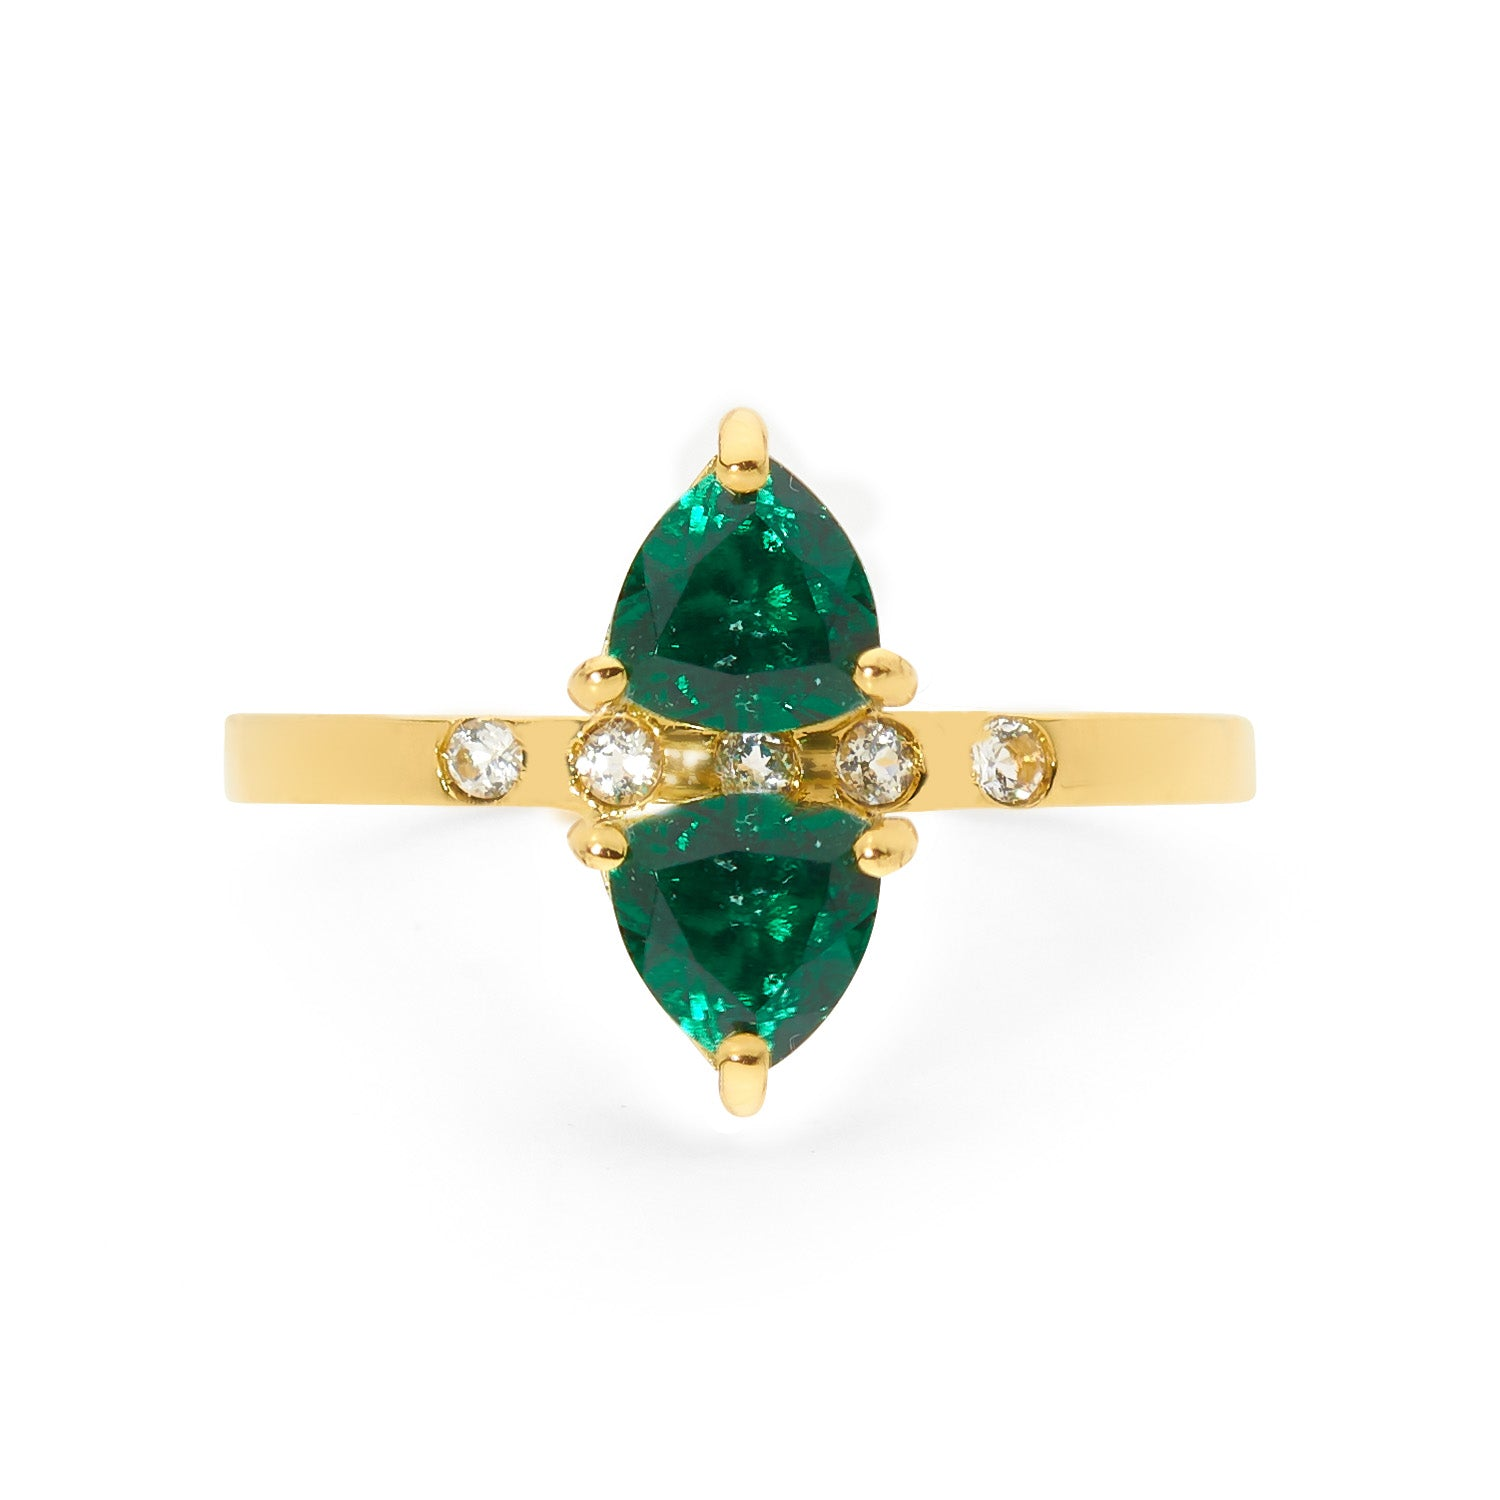 DOUBLE TRILLION EMERALD AND BLACK SPINELS RING